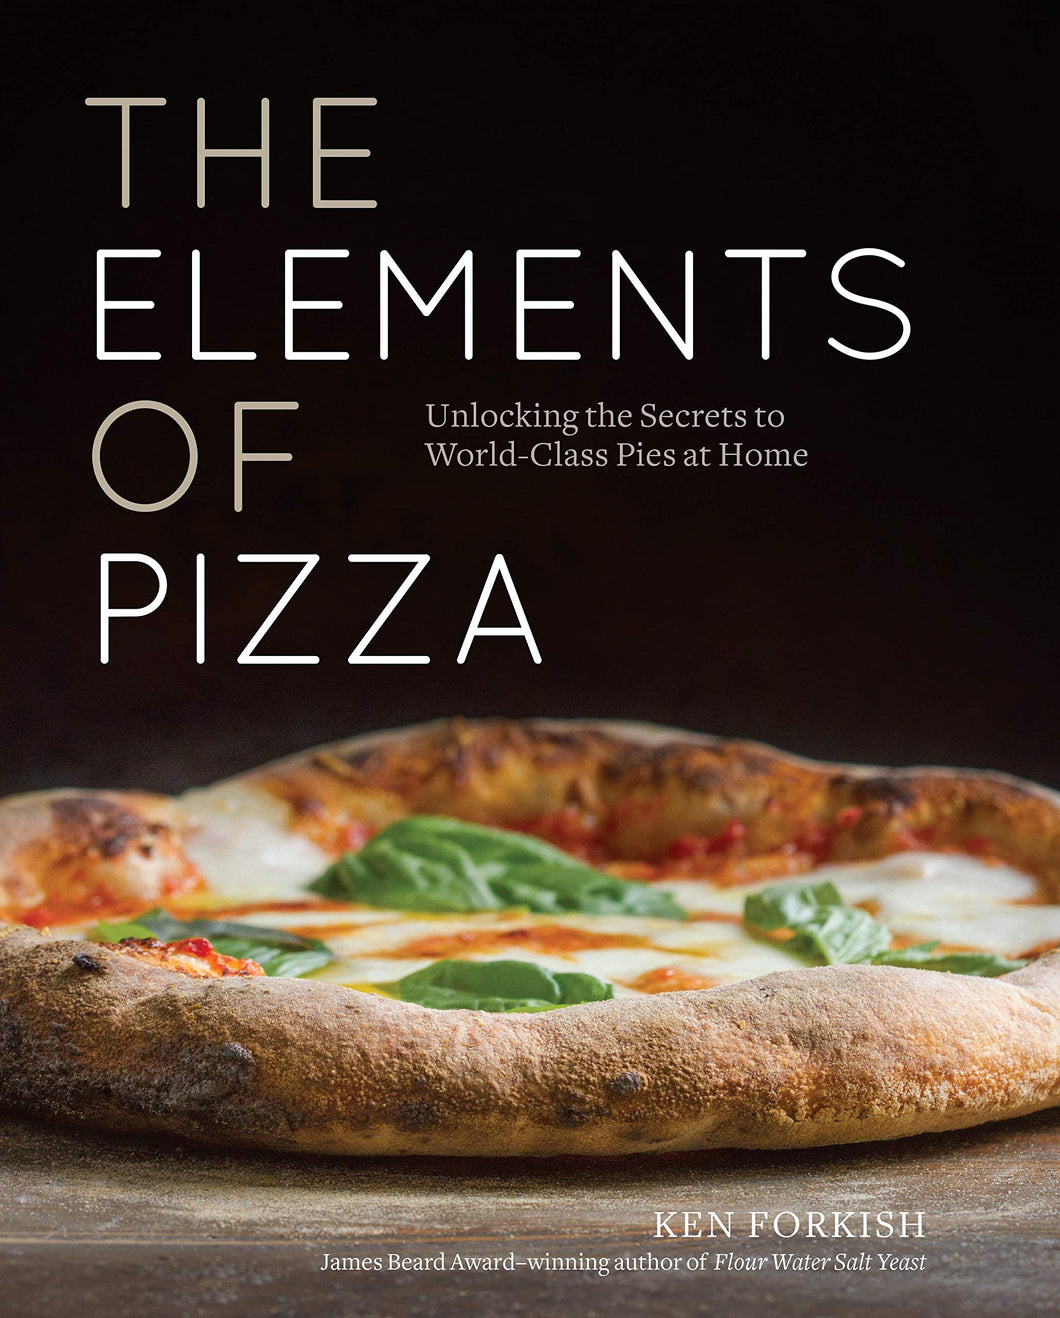 The Elements of Pizza: Unlocking the Secrets to World-Class Pies at Home [A Cookbook] - Tolerant Planet